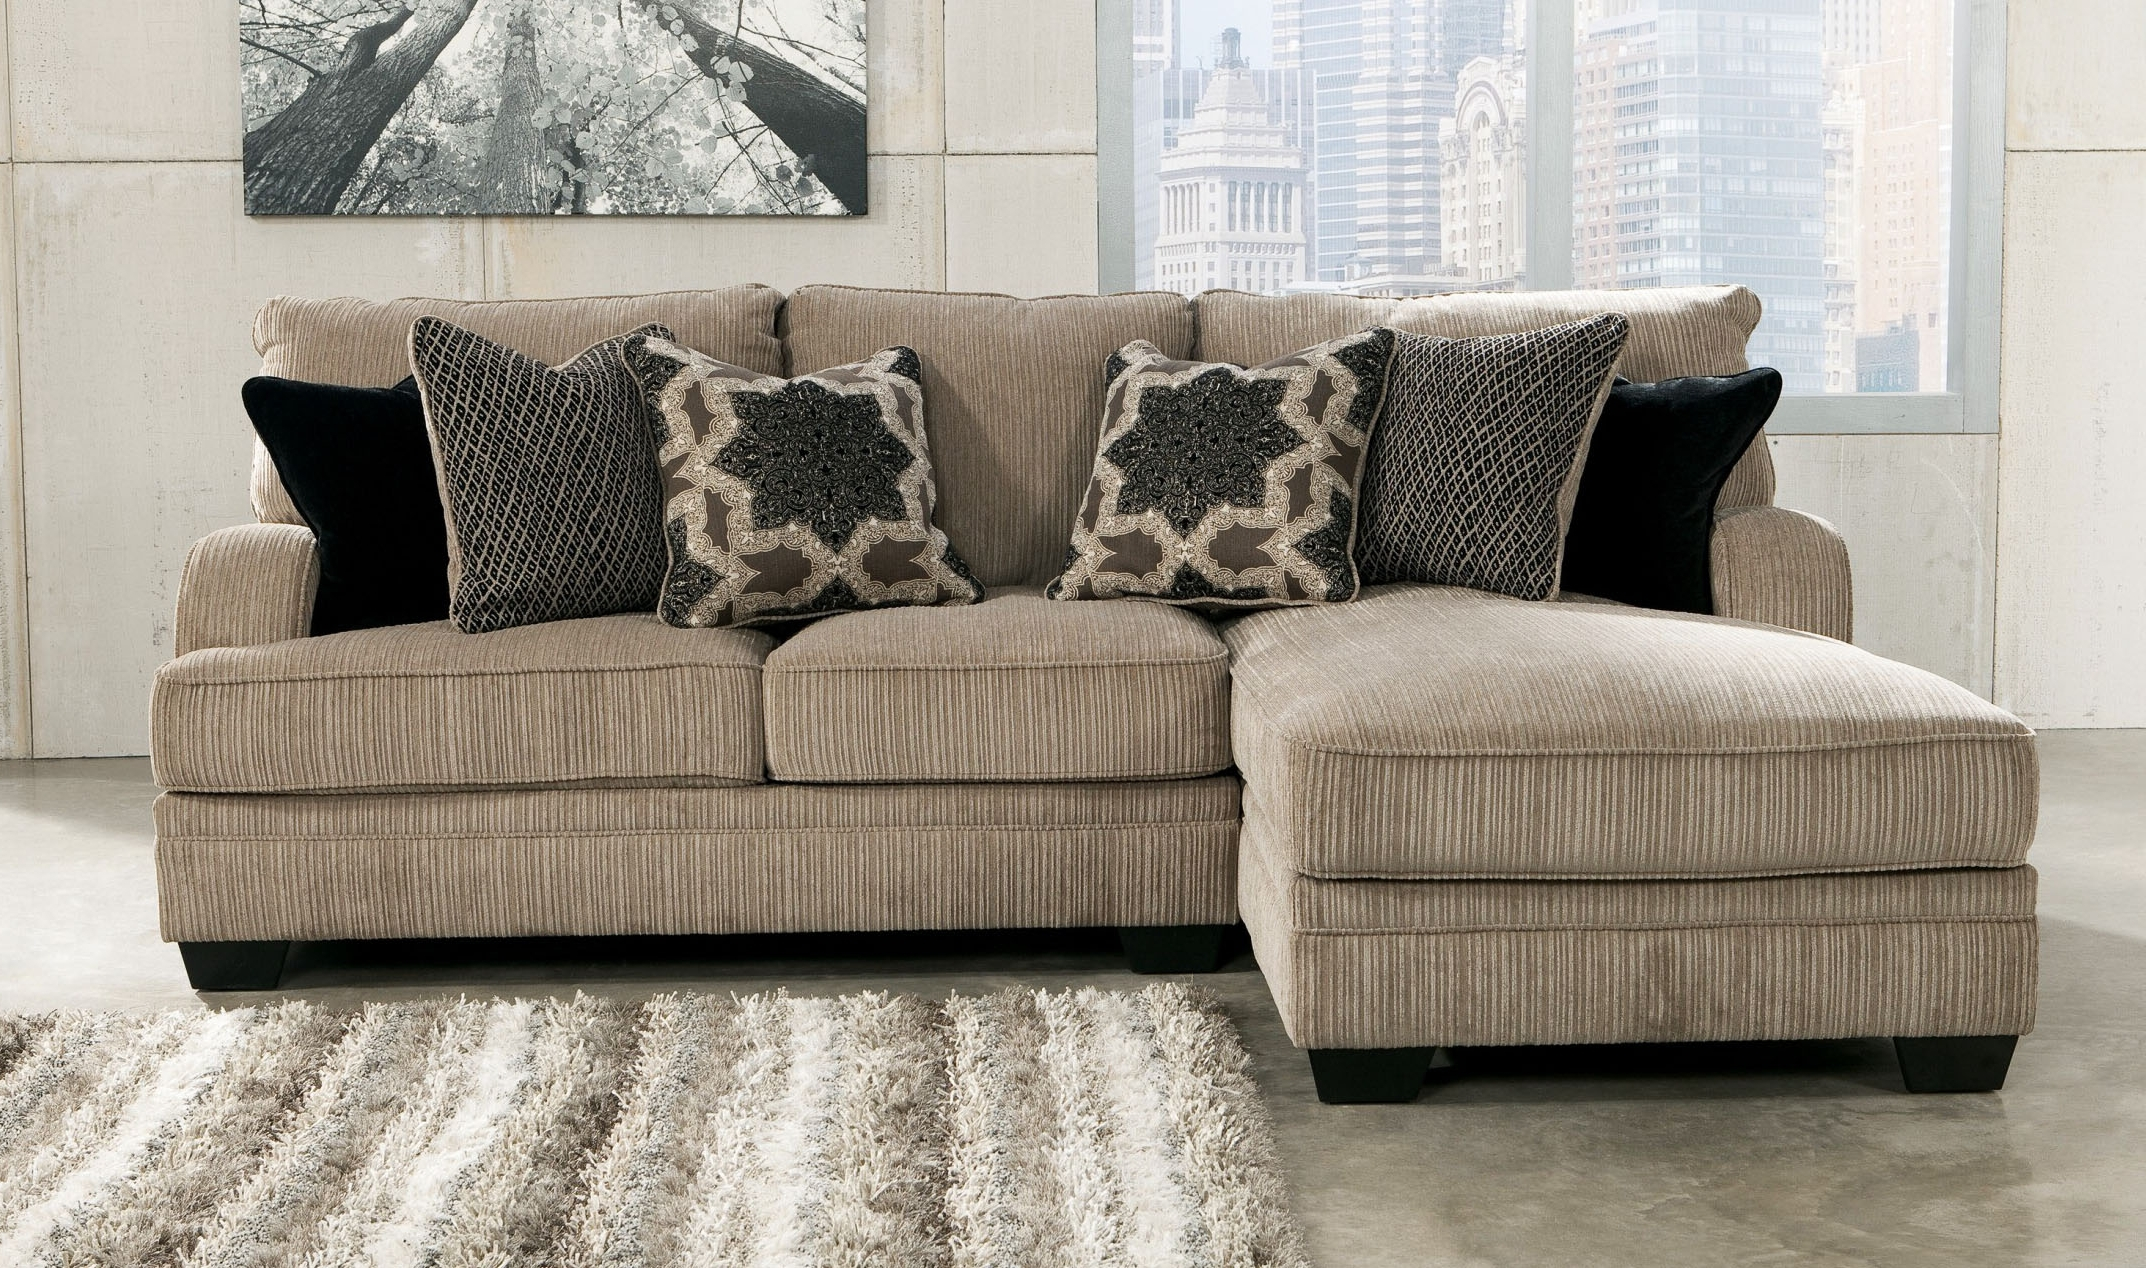 loveseat size cfee couch sectional with small sa sas sofas sofa apartment set chaise sasmagnificent canada